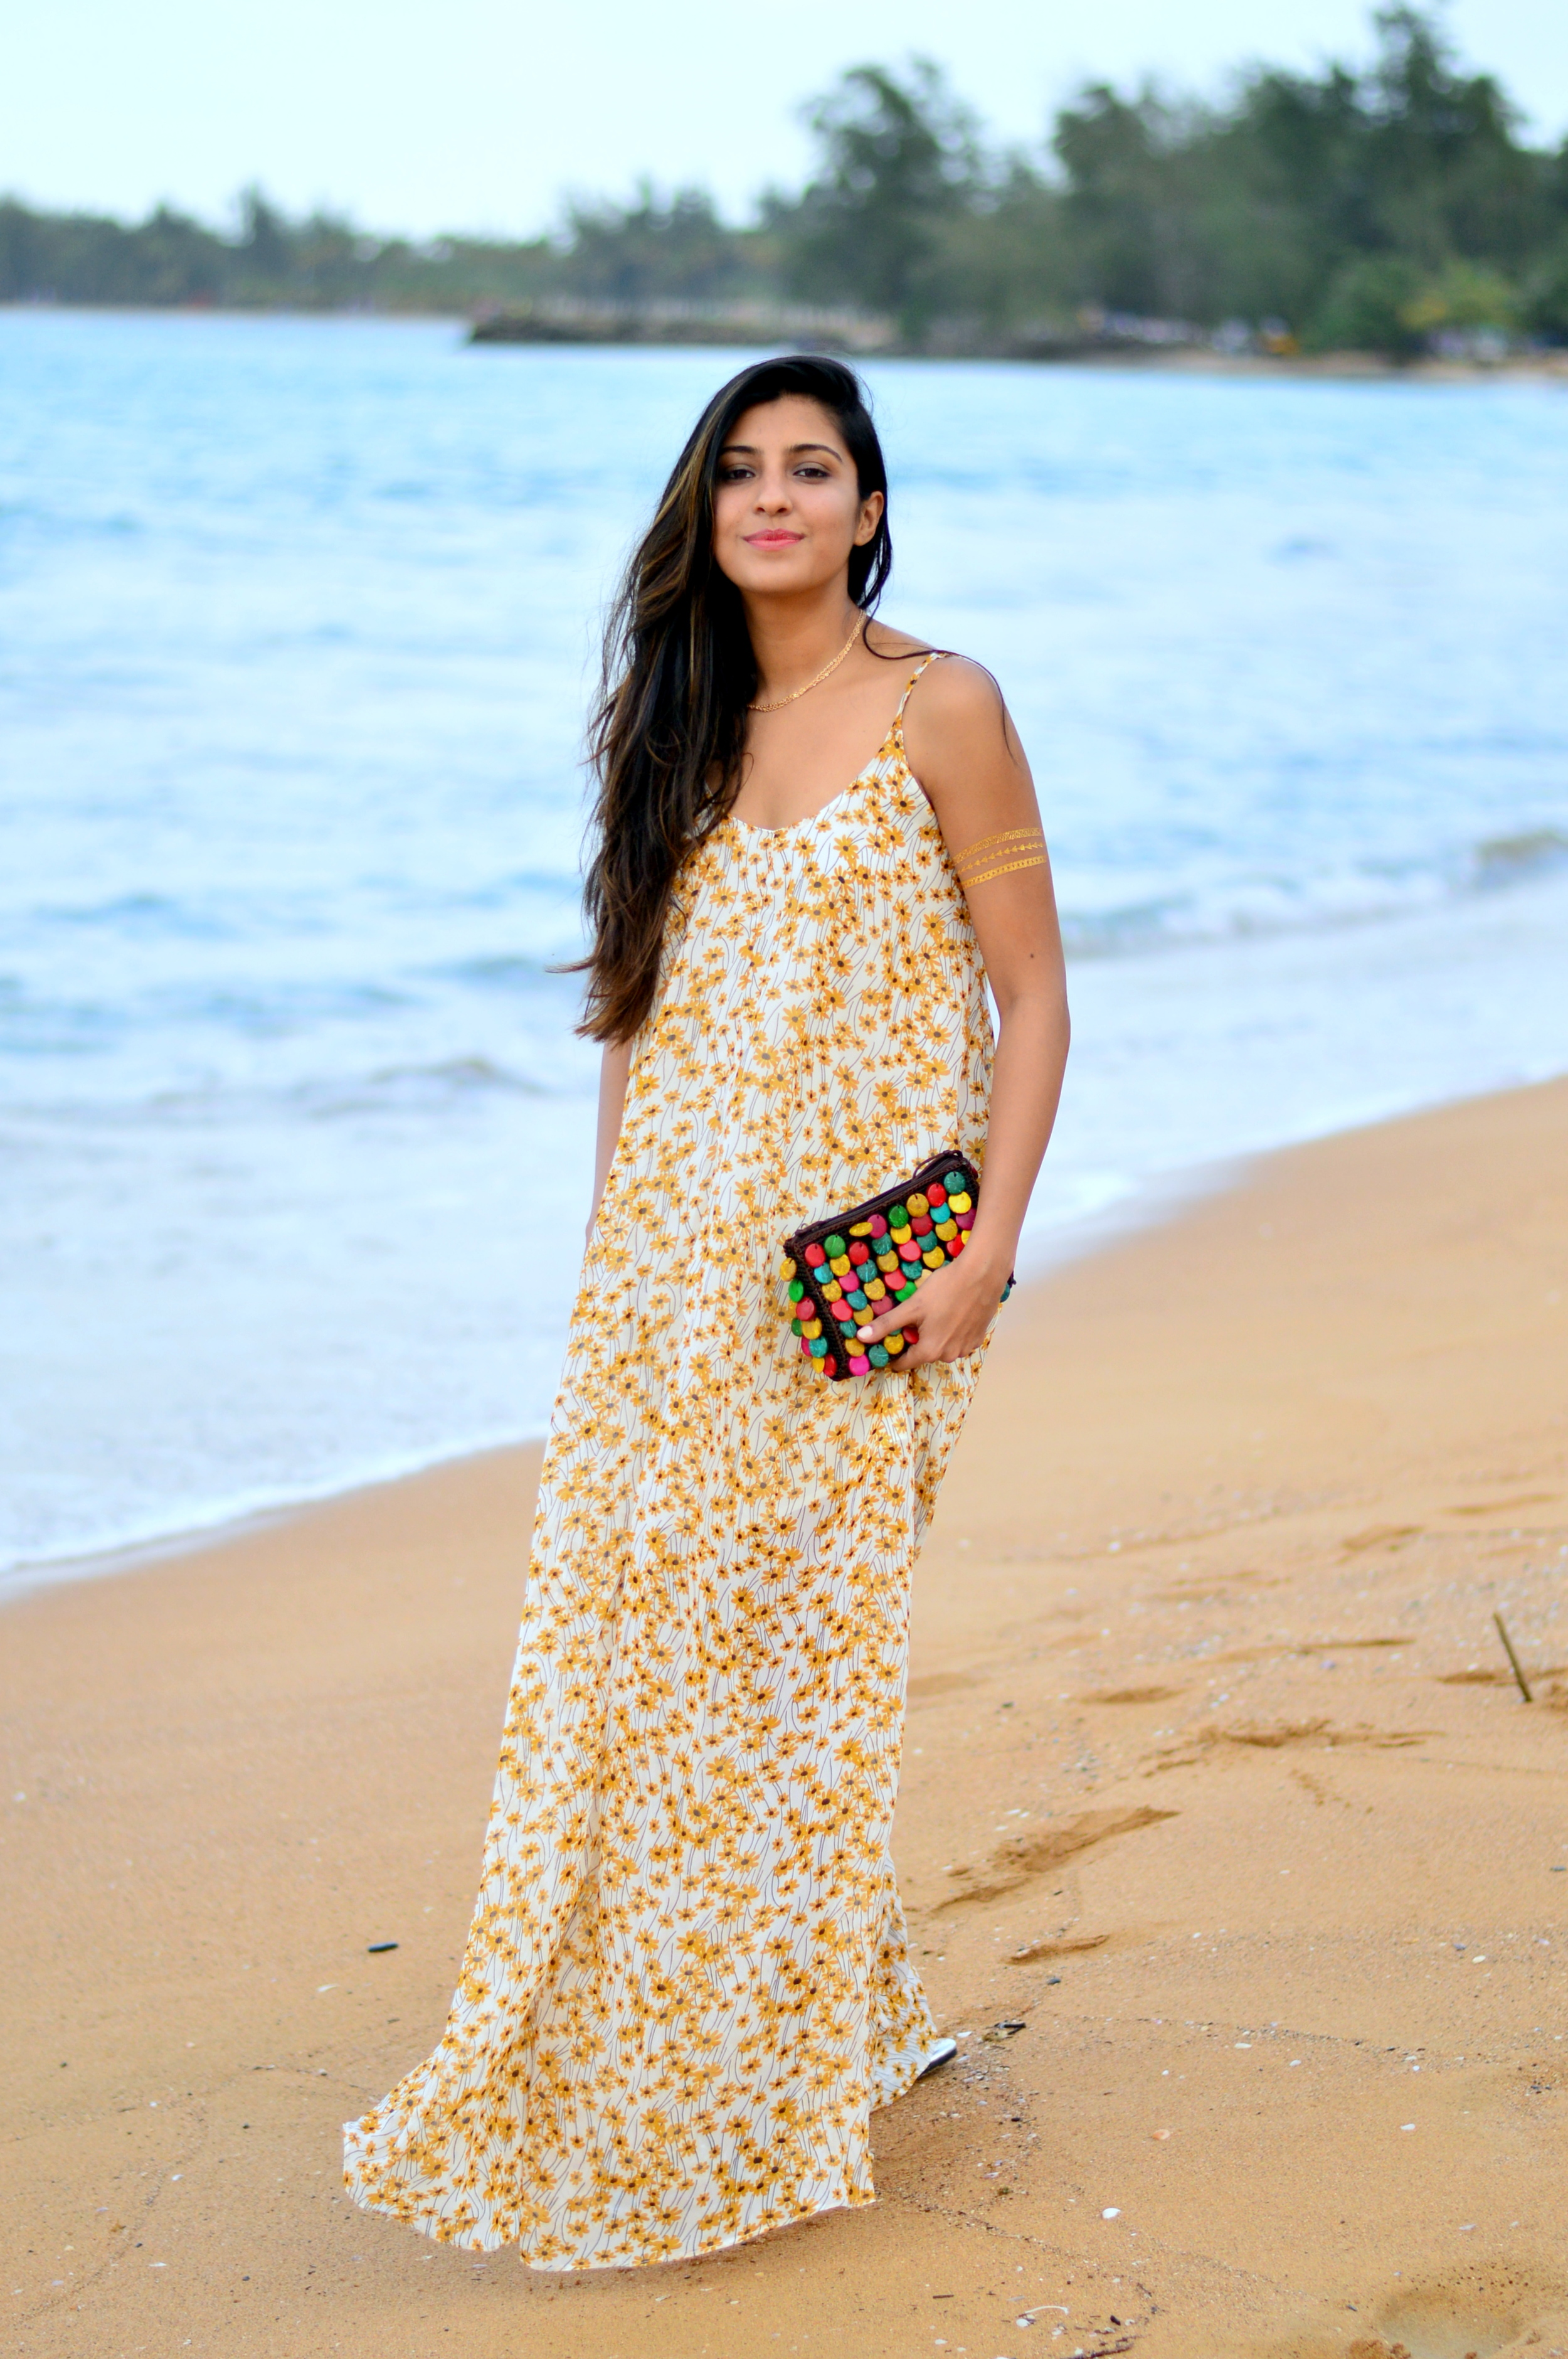 floral-maxi-dress-spring-beach-vacation-style 10